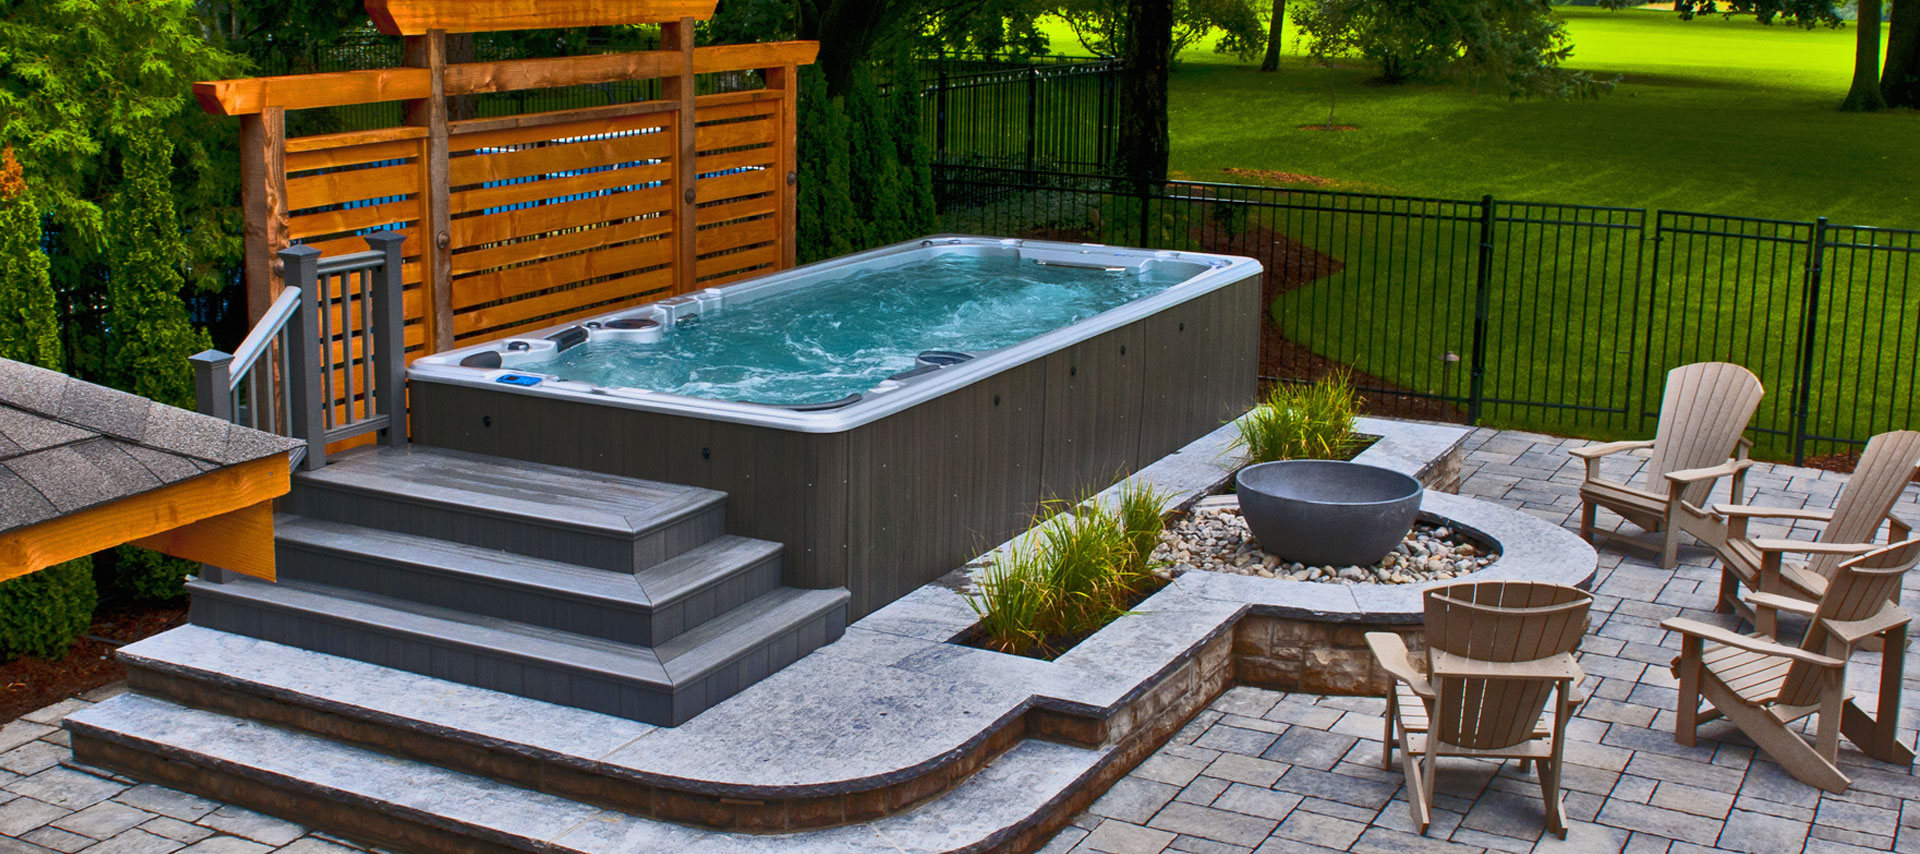 Hydropool Hot Tubs, Swim Spas and Accessories